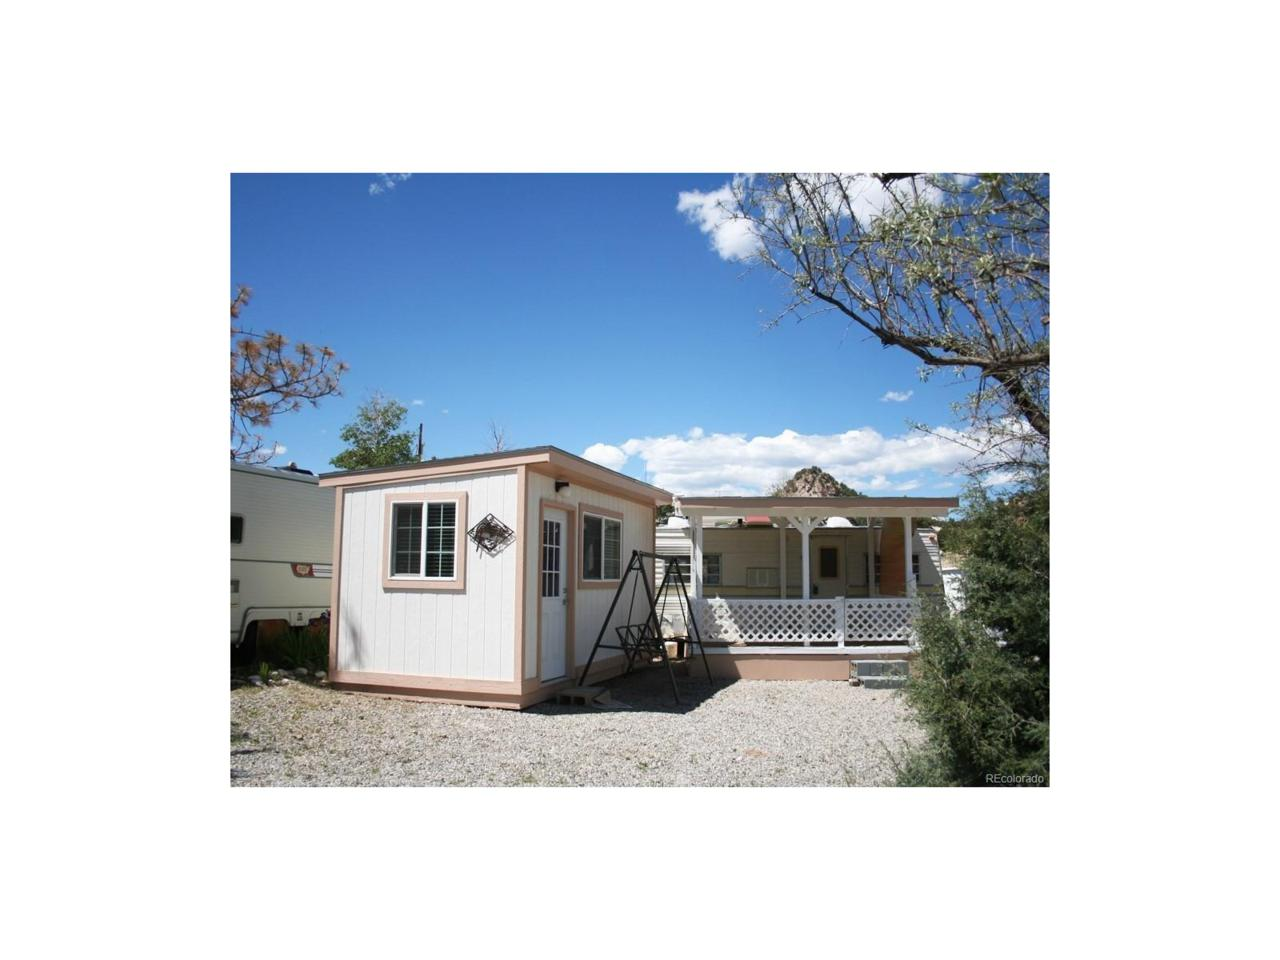 10795 C.R. 197 A Lot 260, Nathrop, CO 81236 (MLS #8451982) :: 8z Real Estate